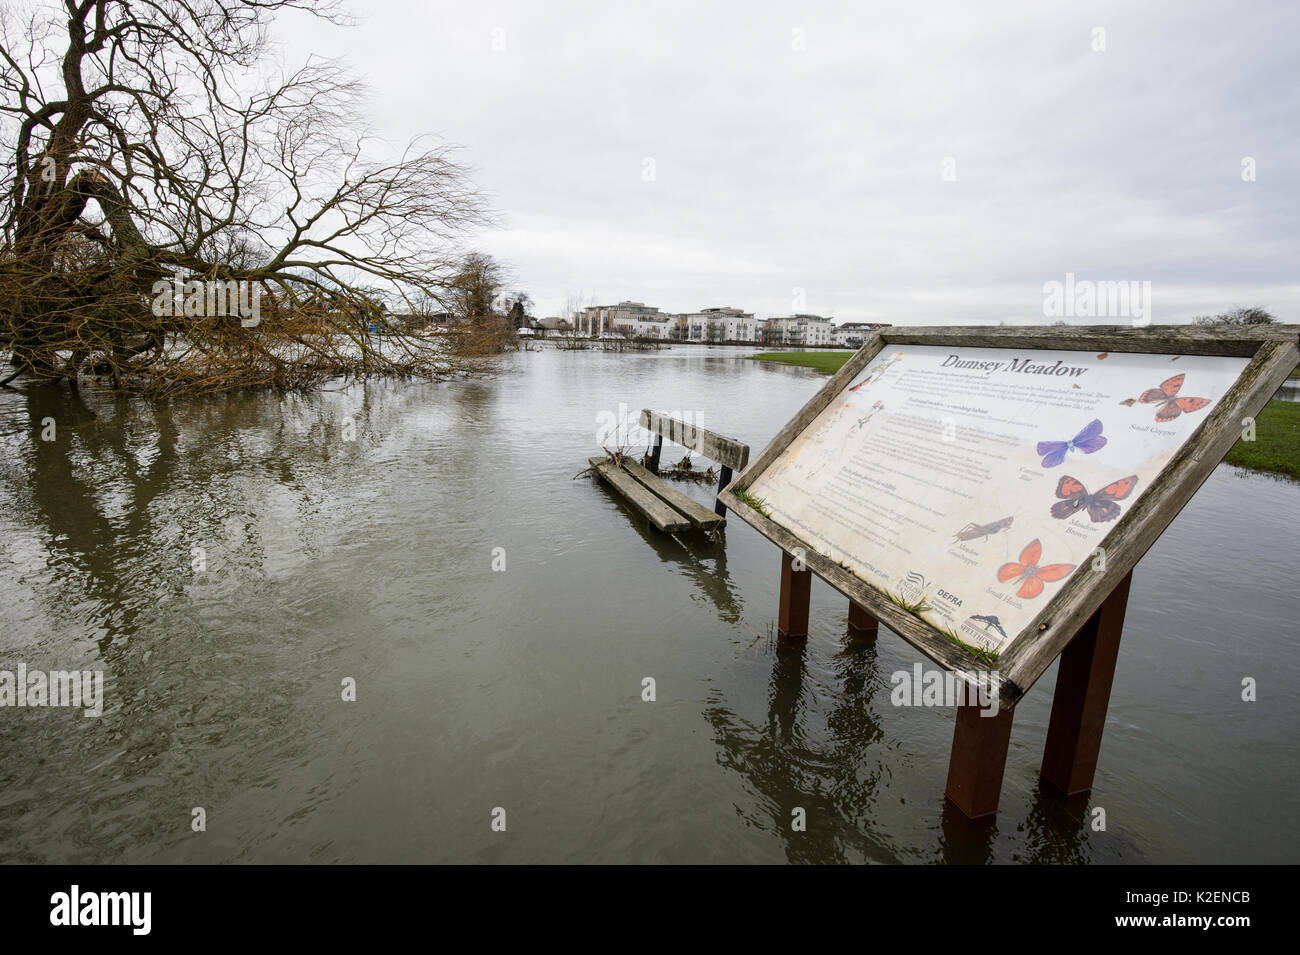 Bench and wildlife information board in park flooded by River Thames, Chertsey, Surrey, UK, February 2014. - Stock Image